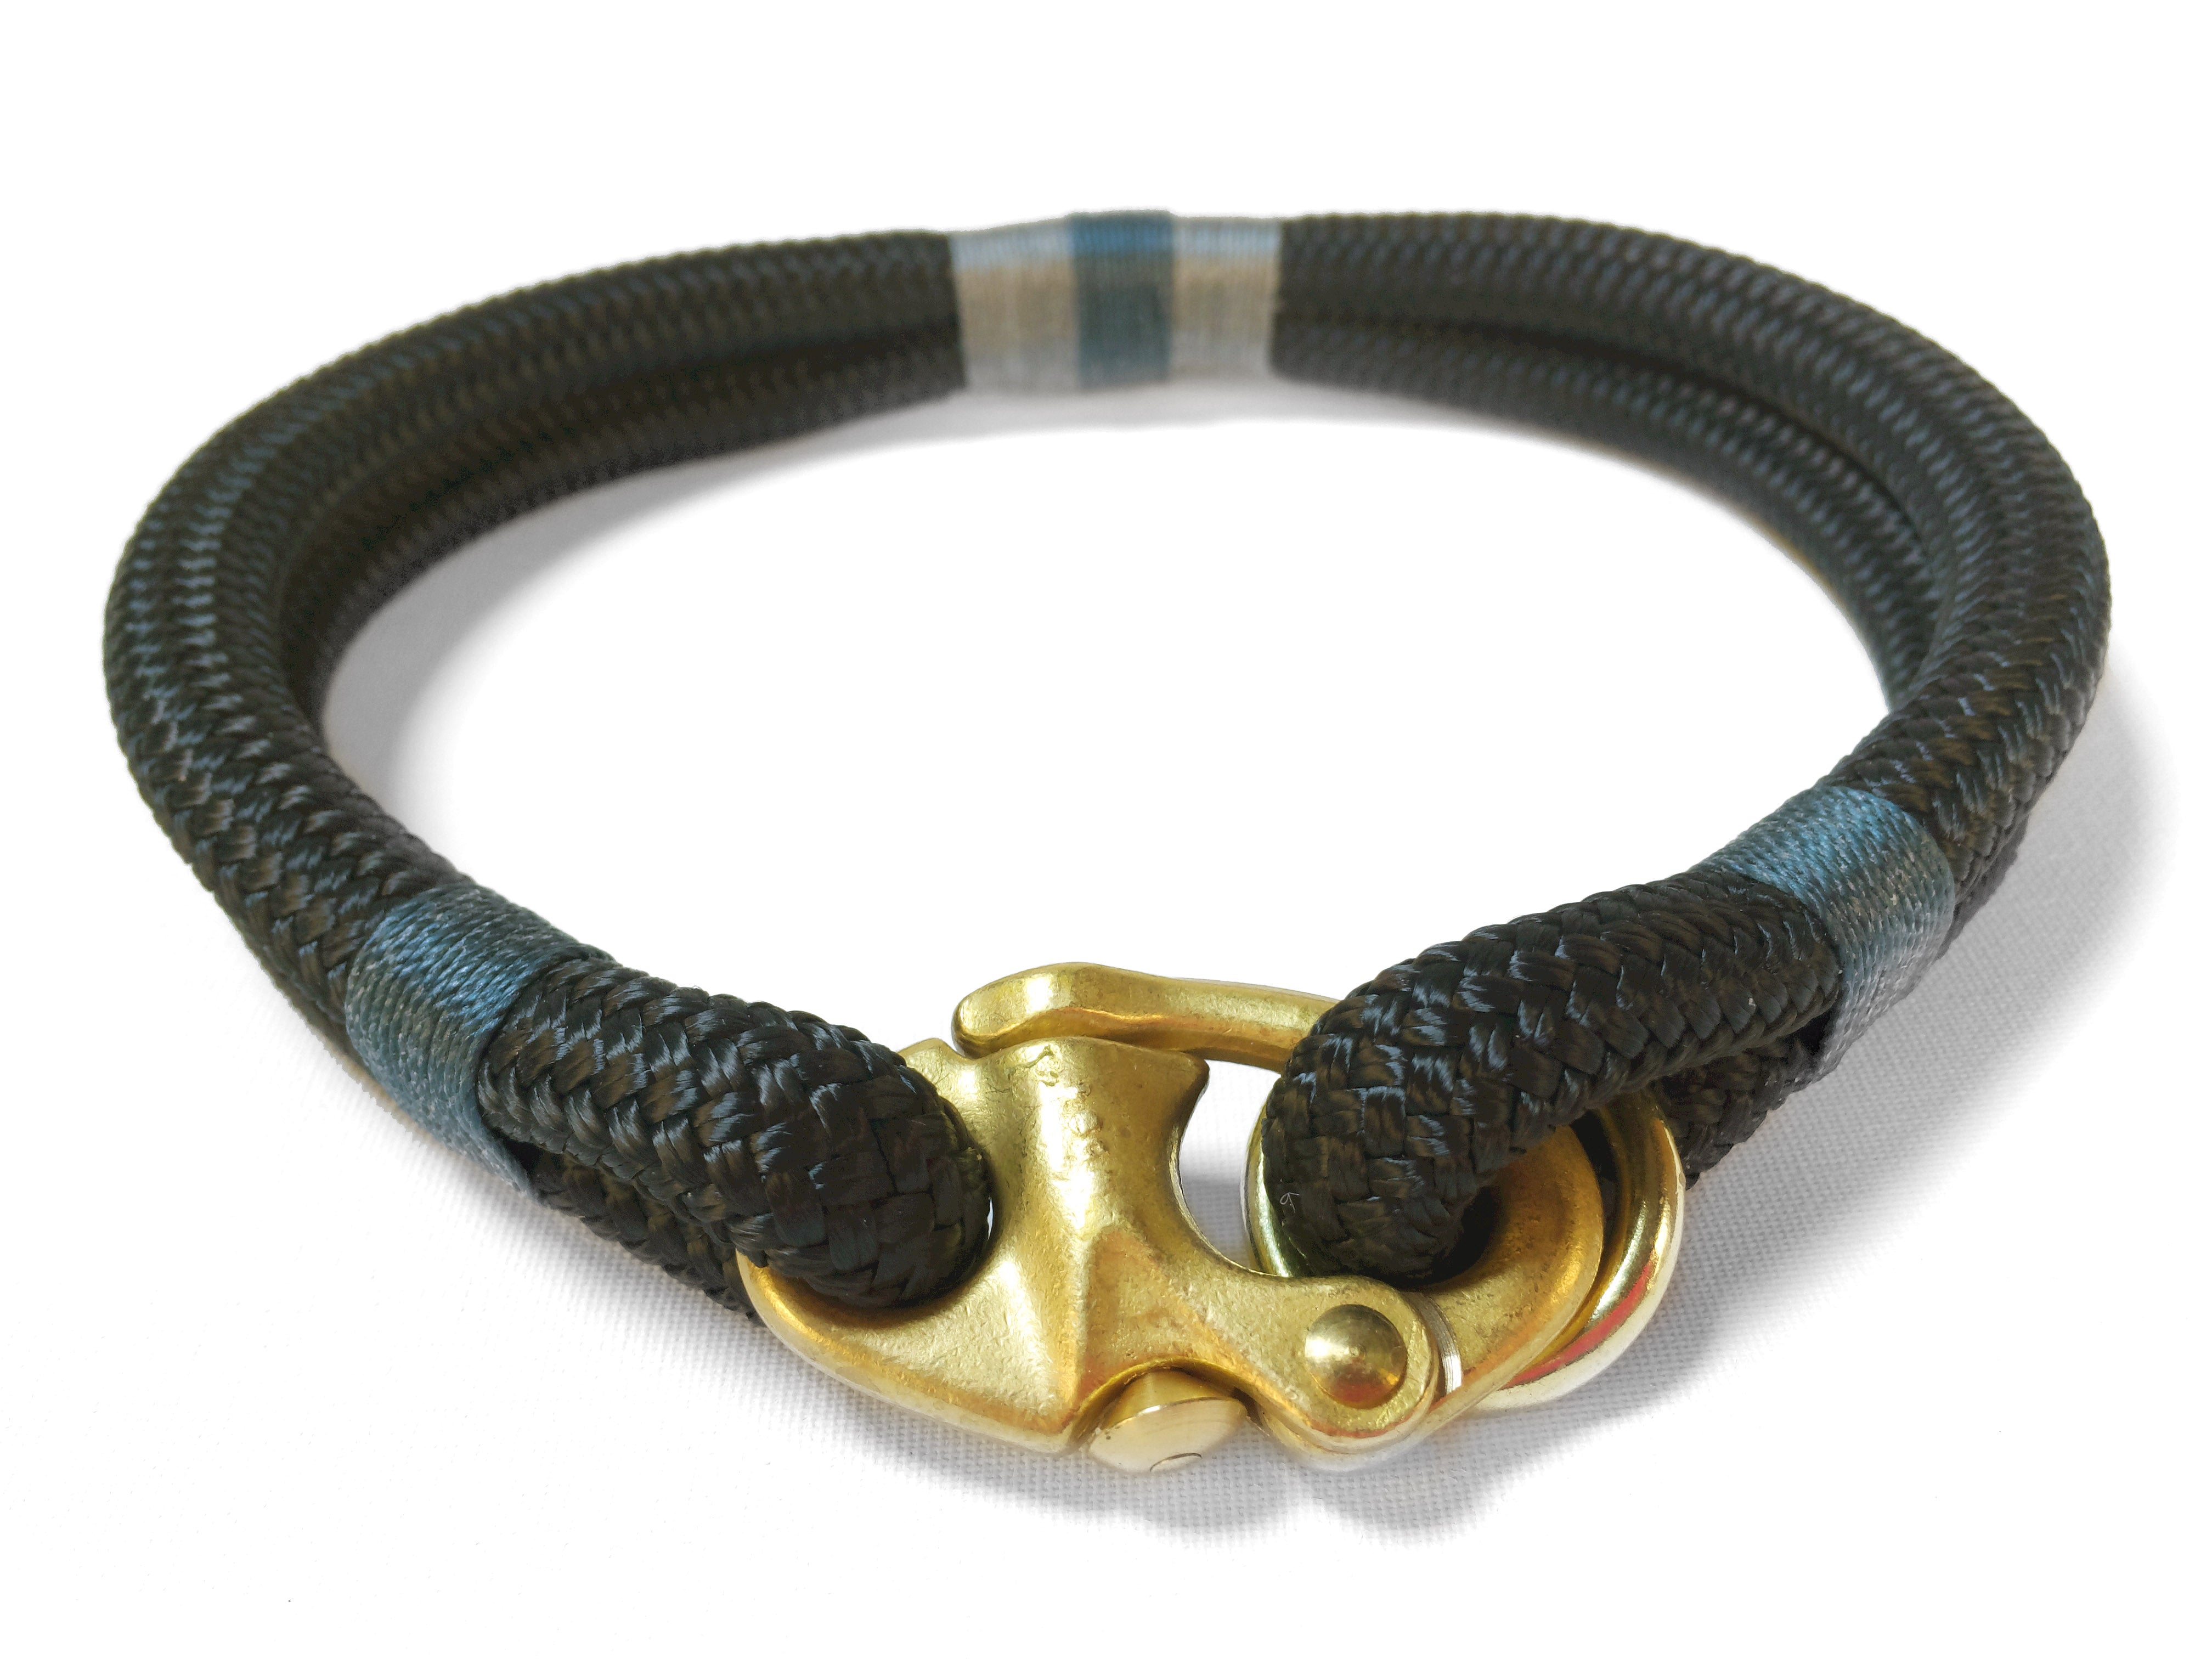 Stunning gold clasp on luxury dog collar.  Made by hand in the UK.  British crafted dog products